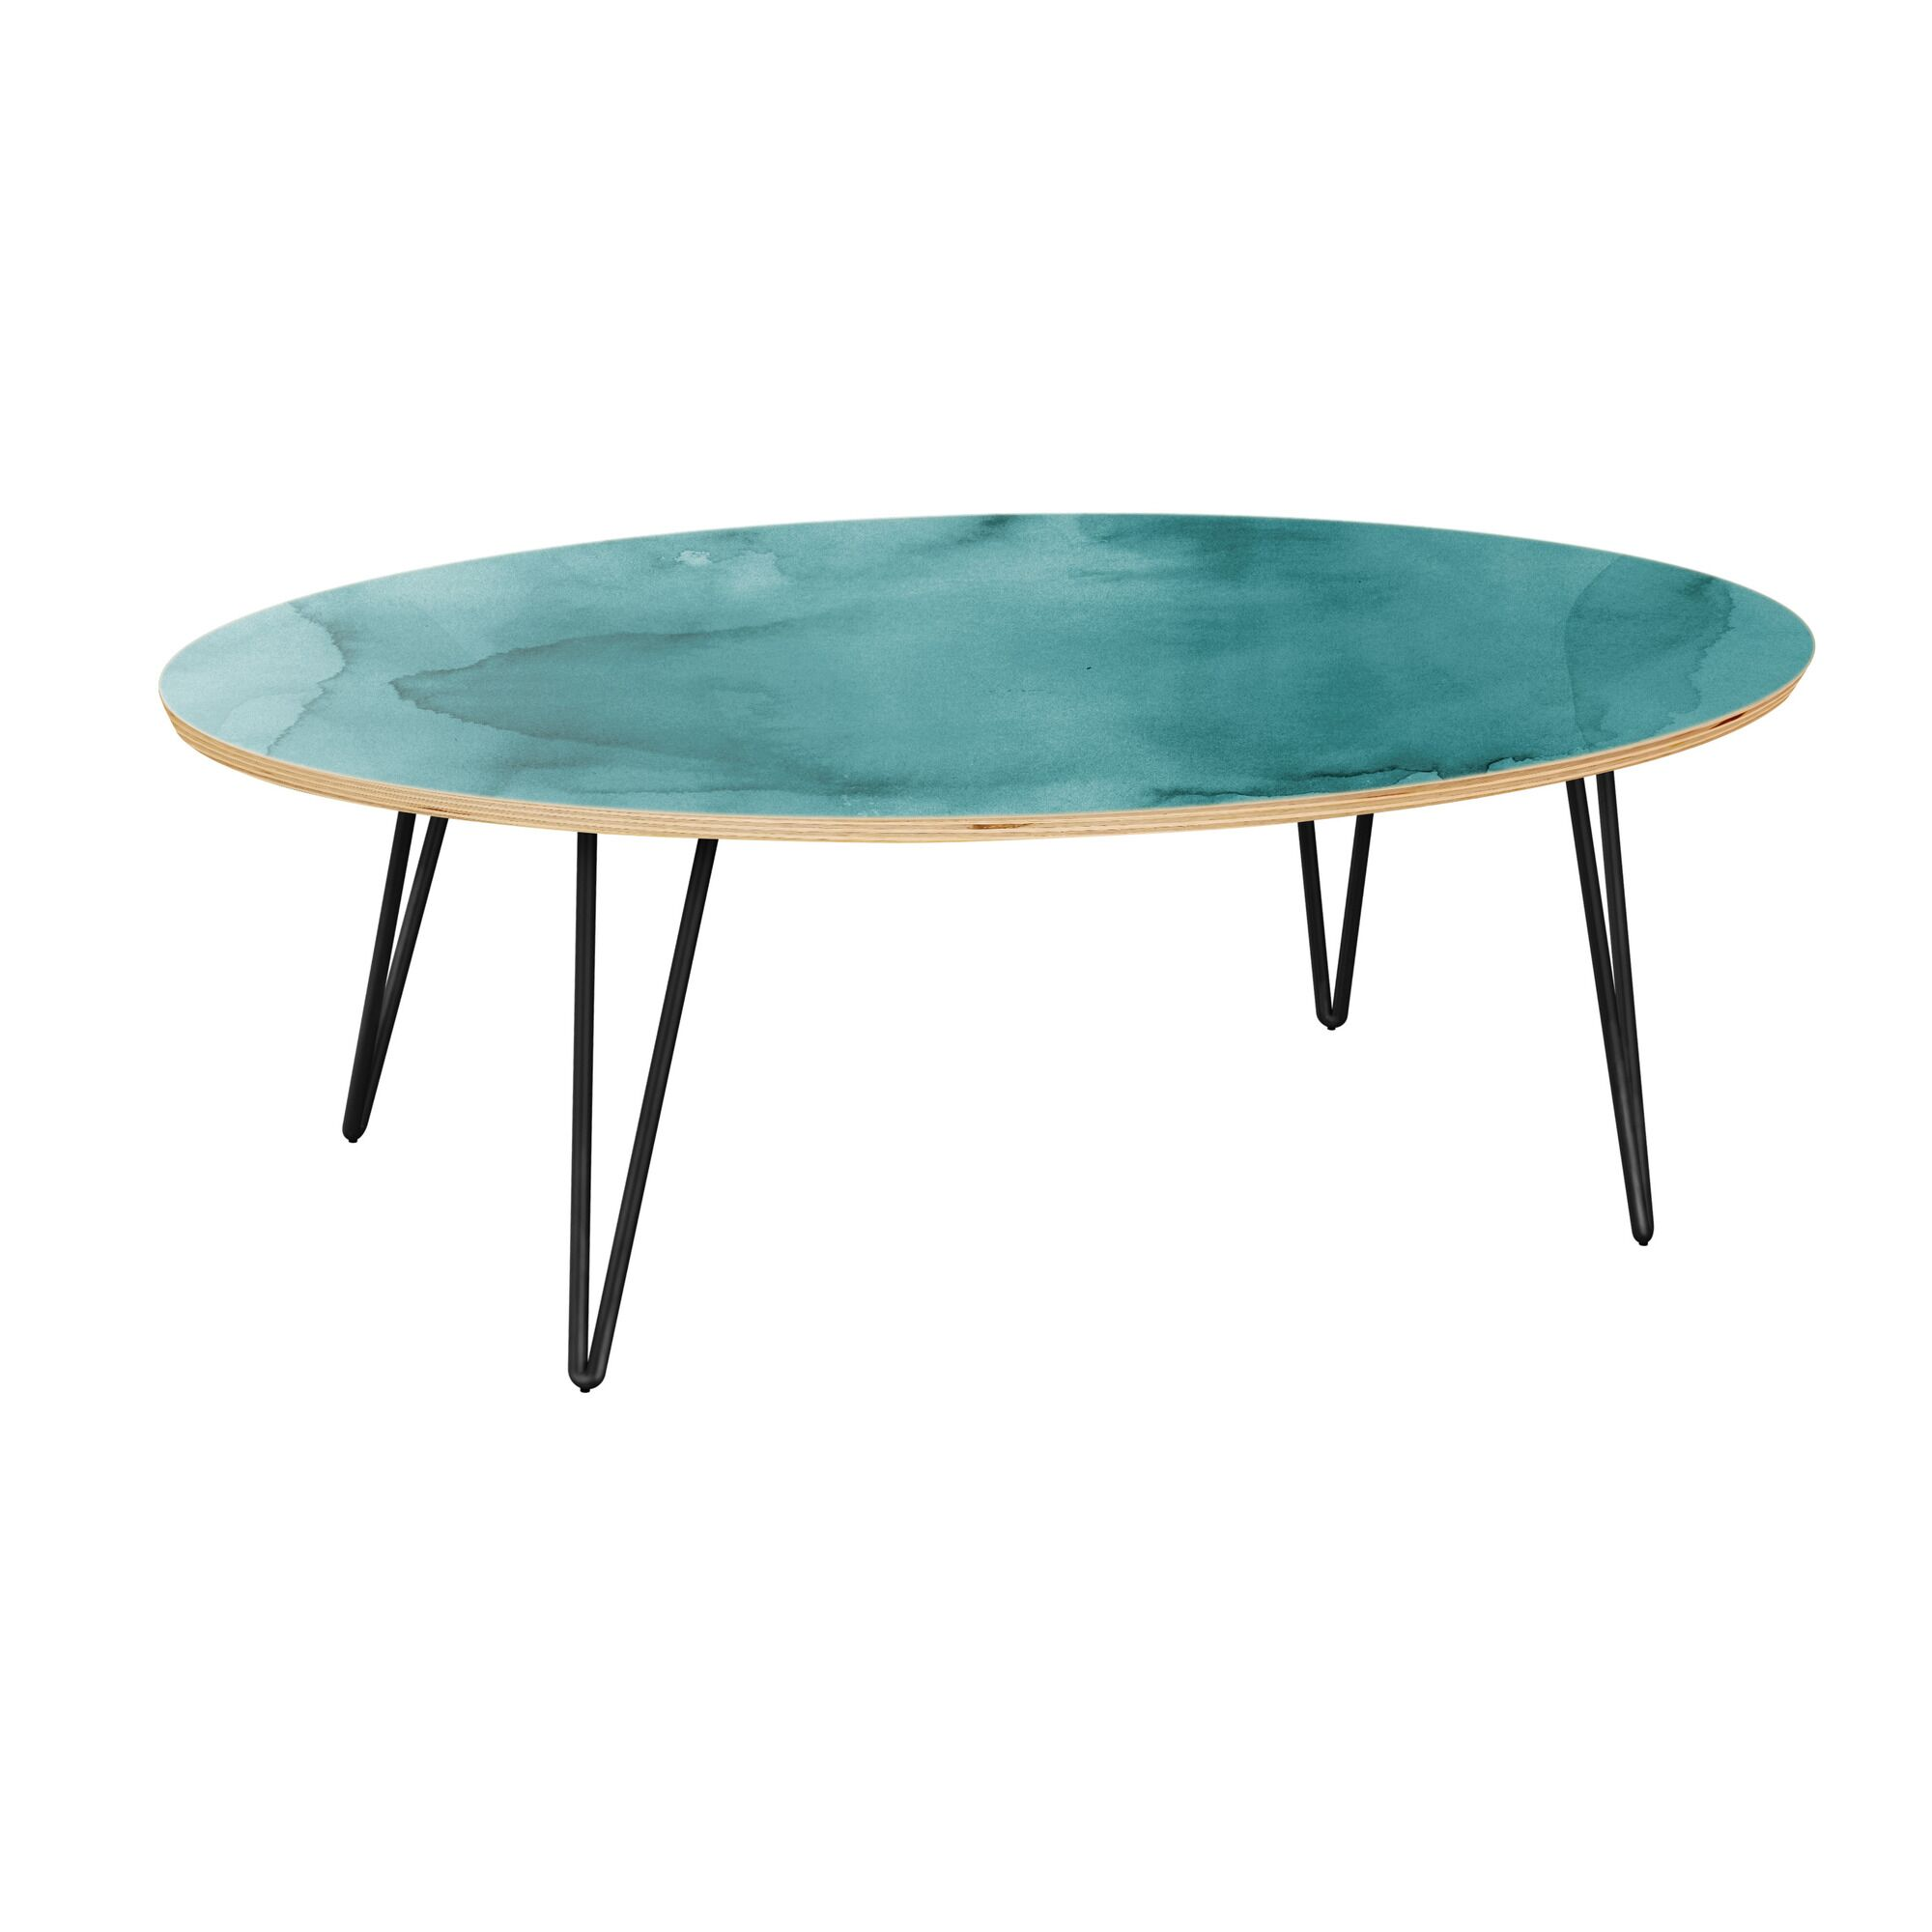 Raybon Coffee Table Table Top Boarder Color: Natural, Table Base Color: Black, Table Top Color: Turquoise